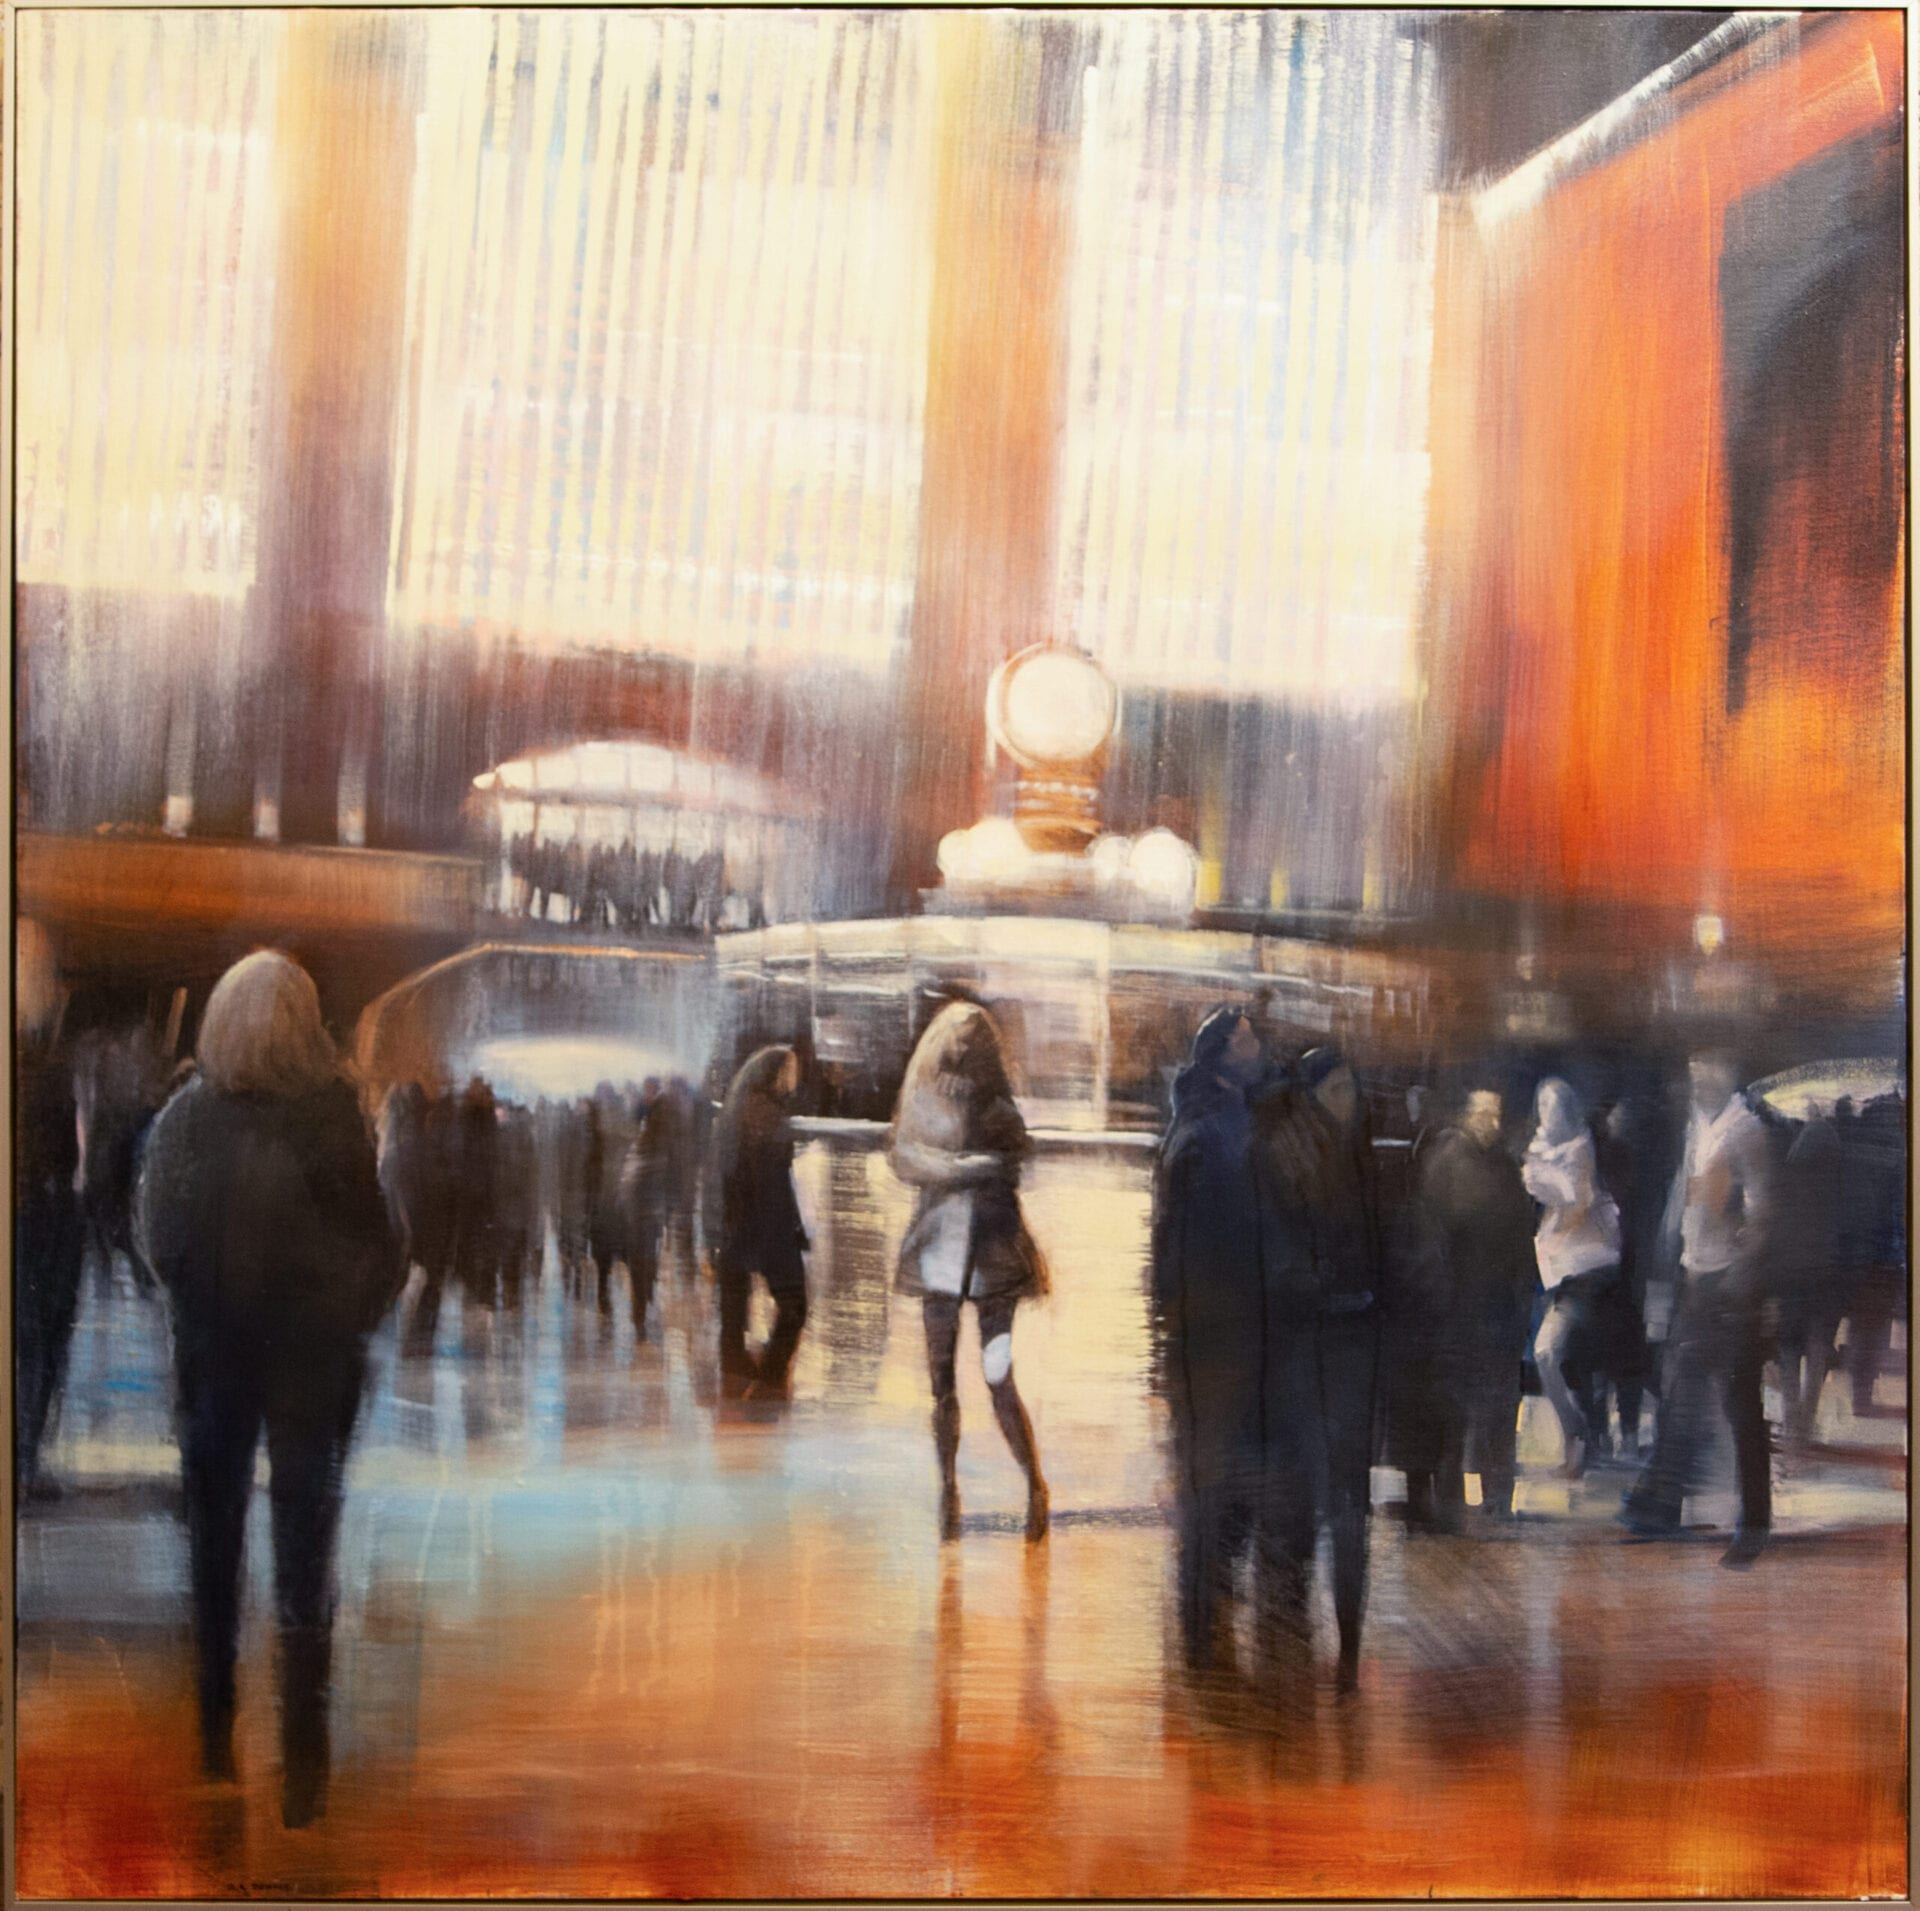 Grand Central | David Dunlop | Oil on Canvas | 48 x 48""